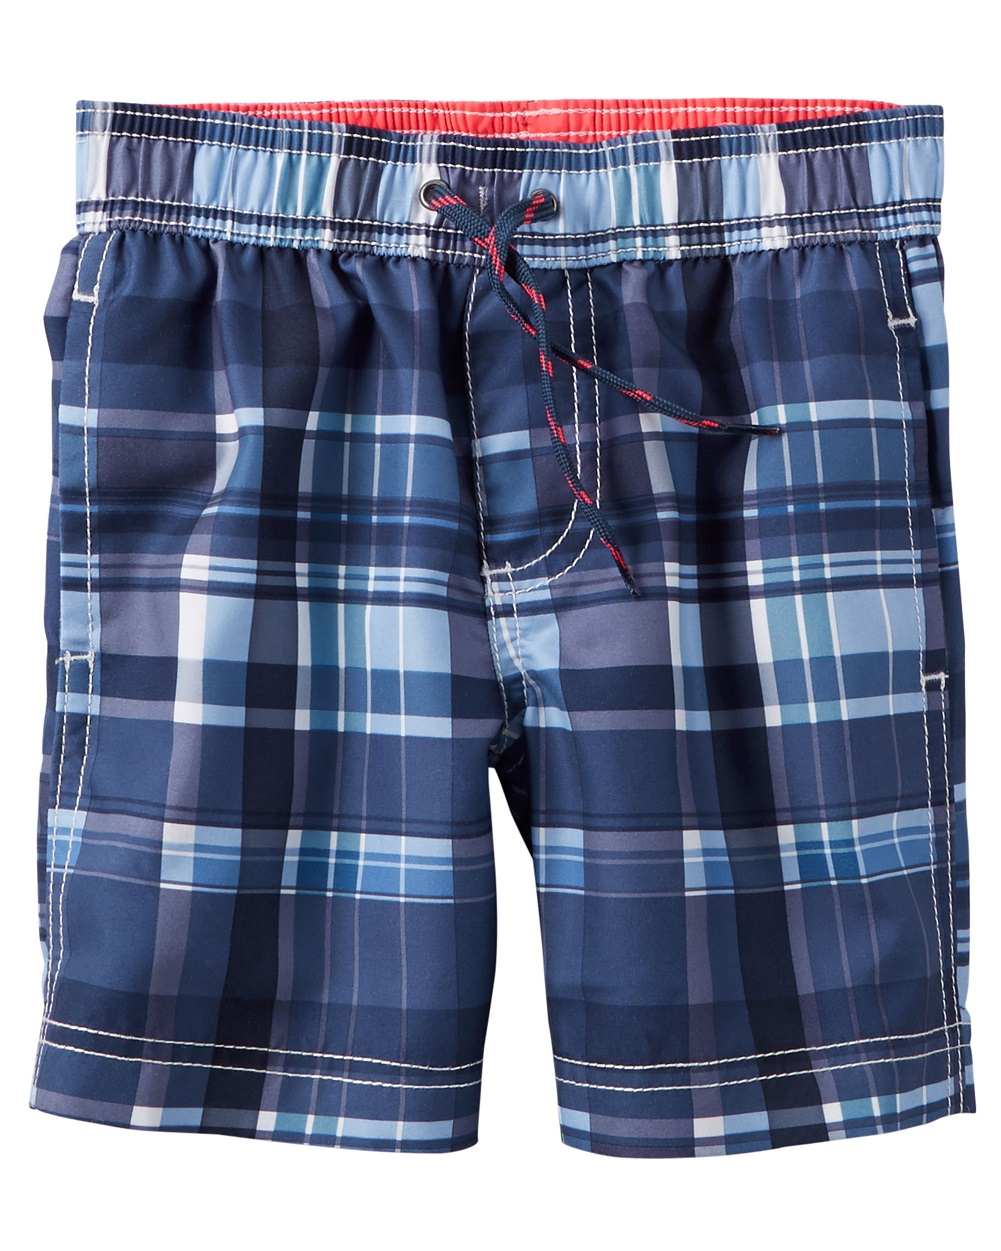 Carter's Baby Boys' Plaid Swim Trunks, 24 Months